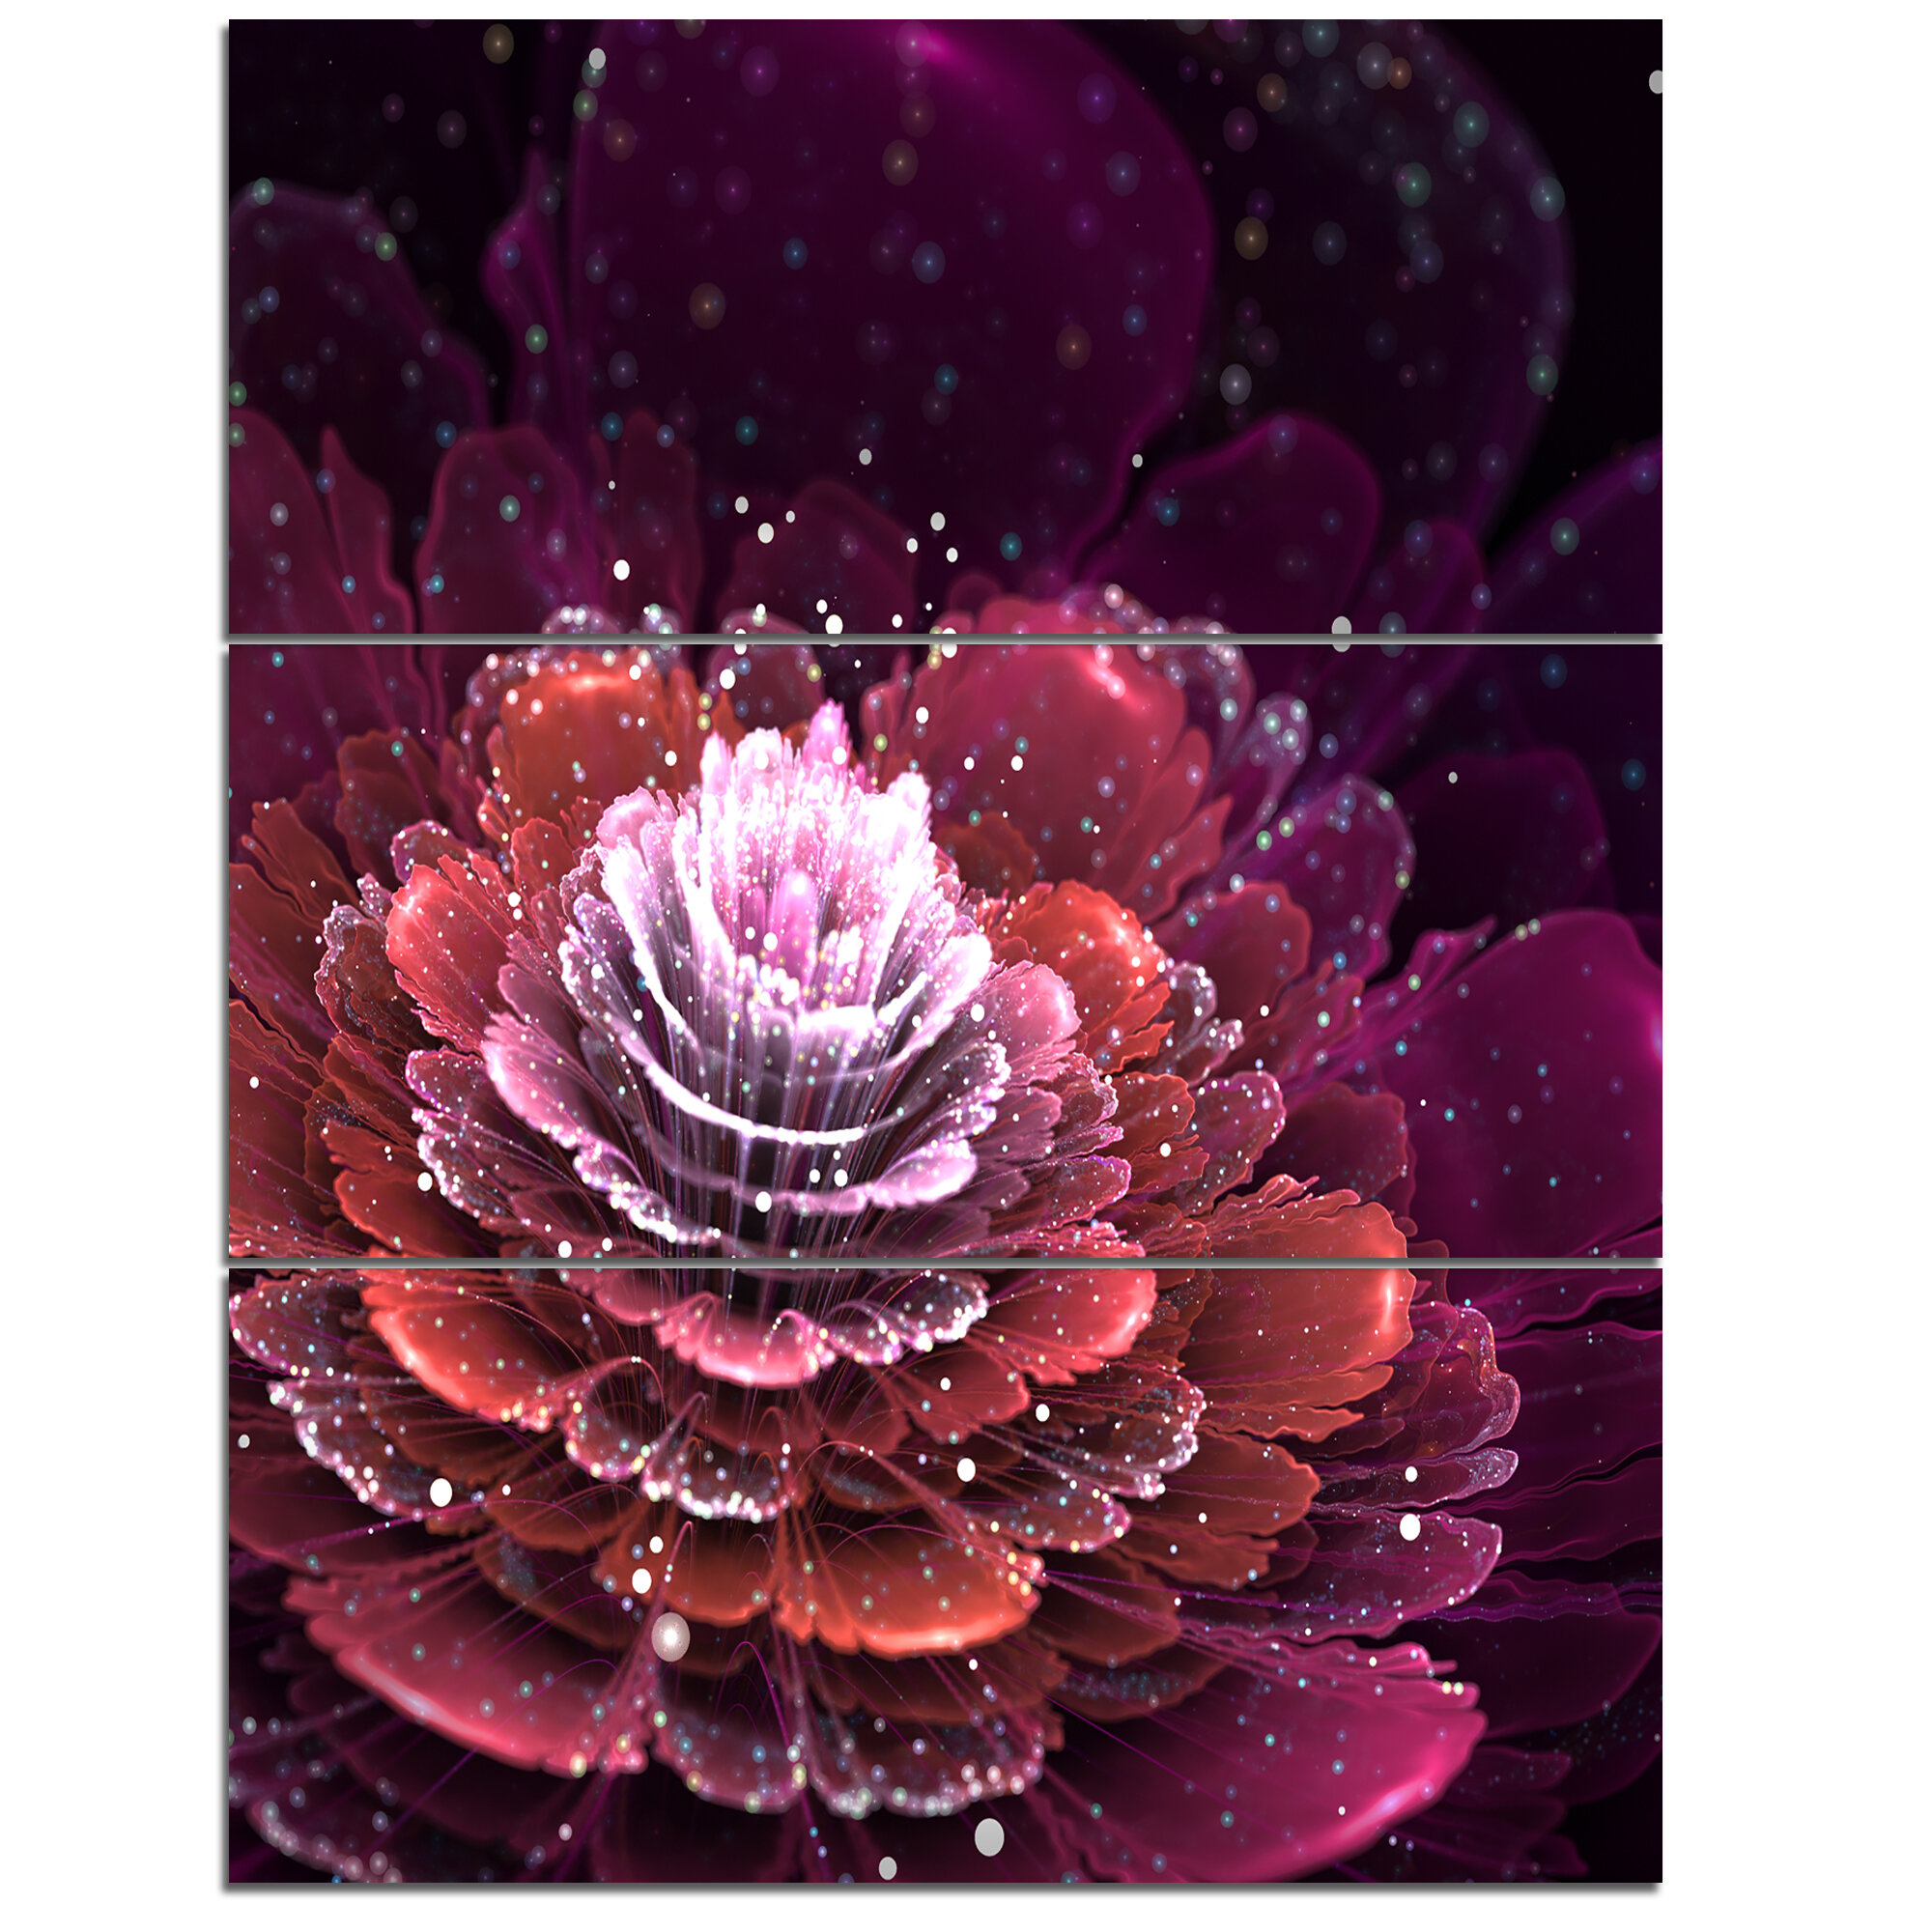 Designart Fractal Flower Red And White 3 Piece Graphic Art On Wrapped Canvas Set Wayfair